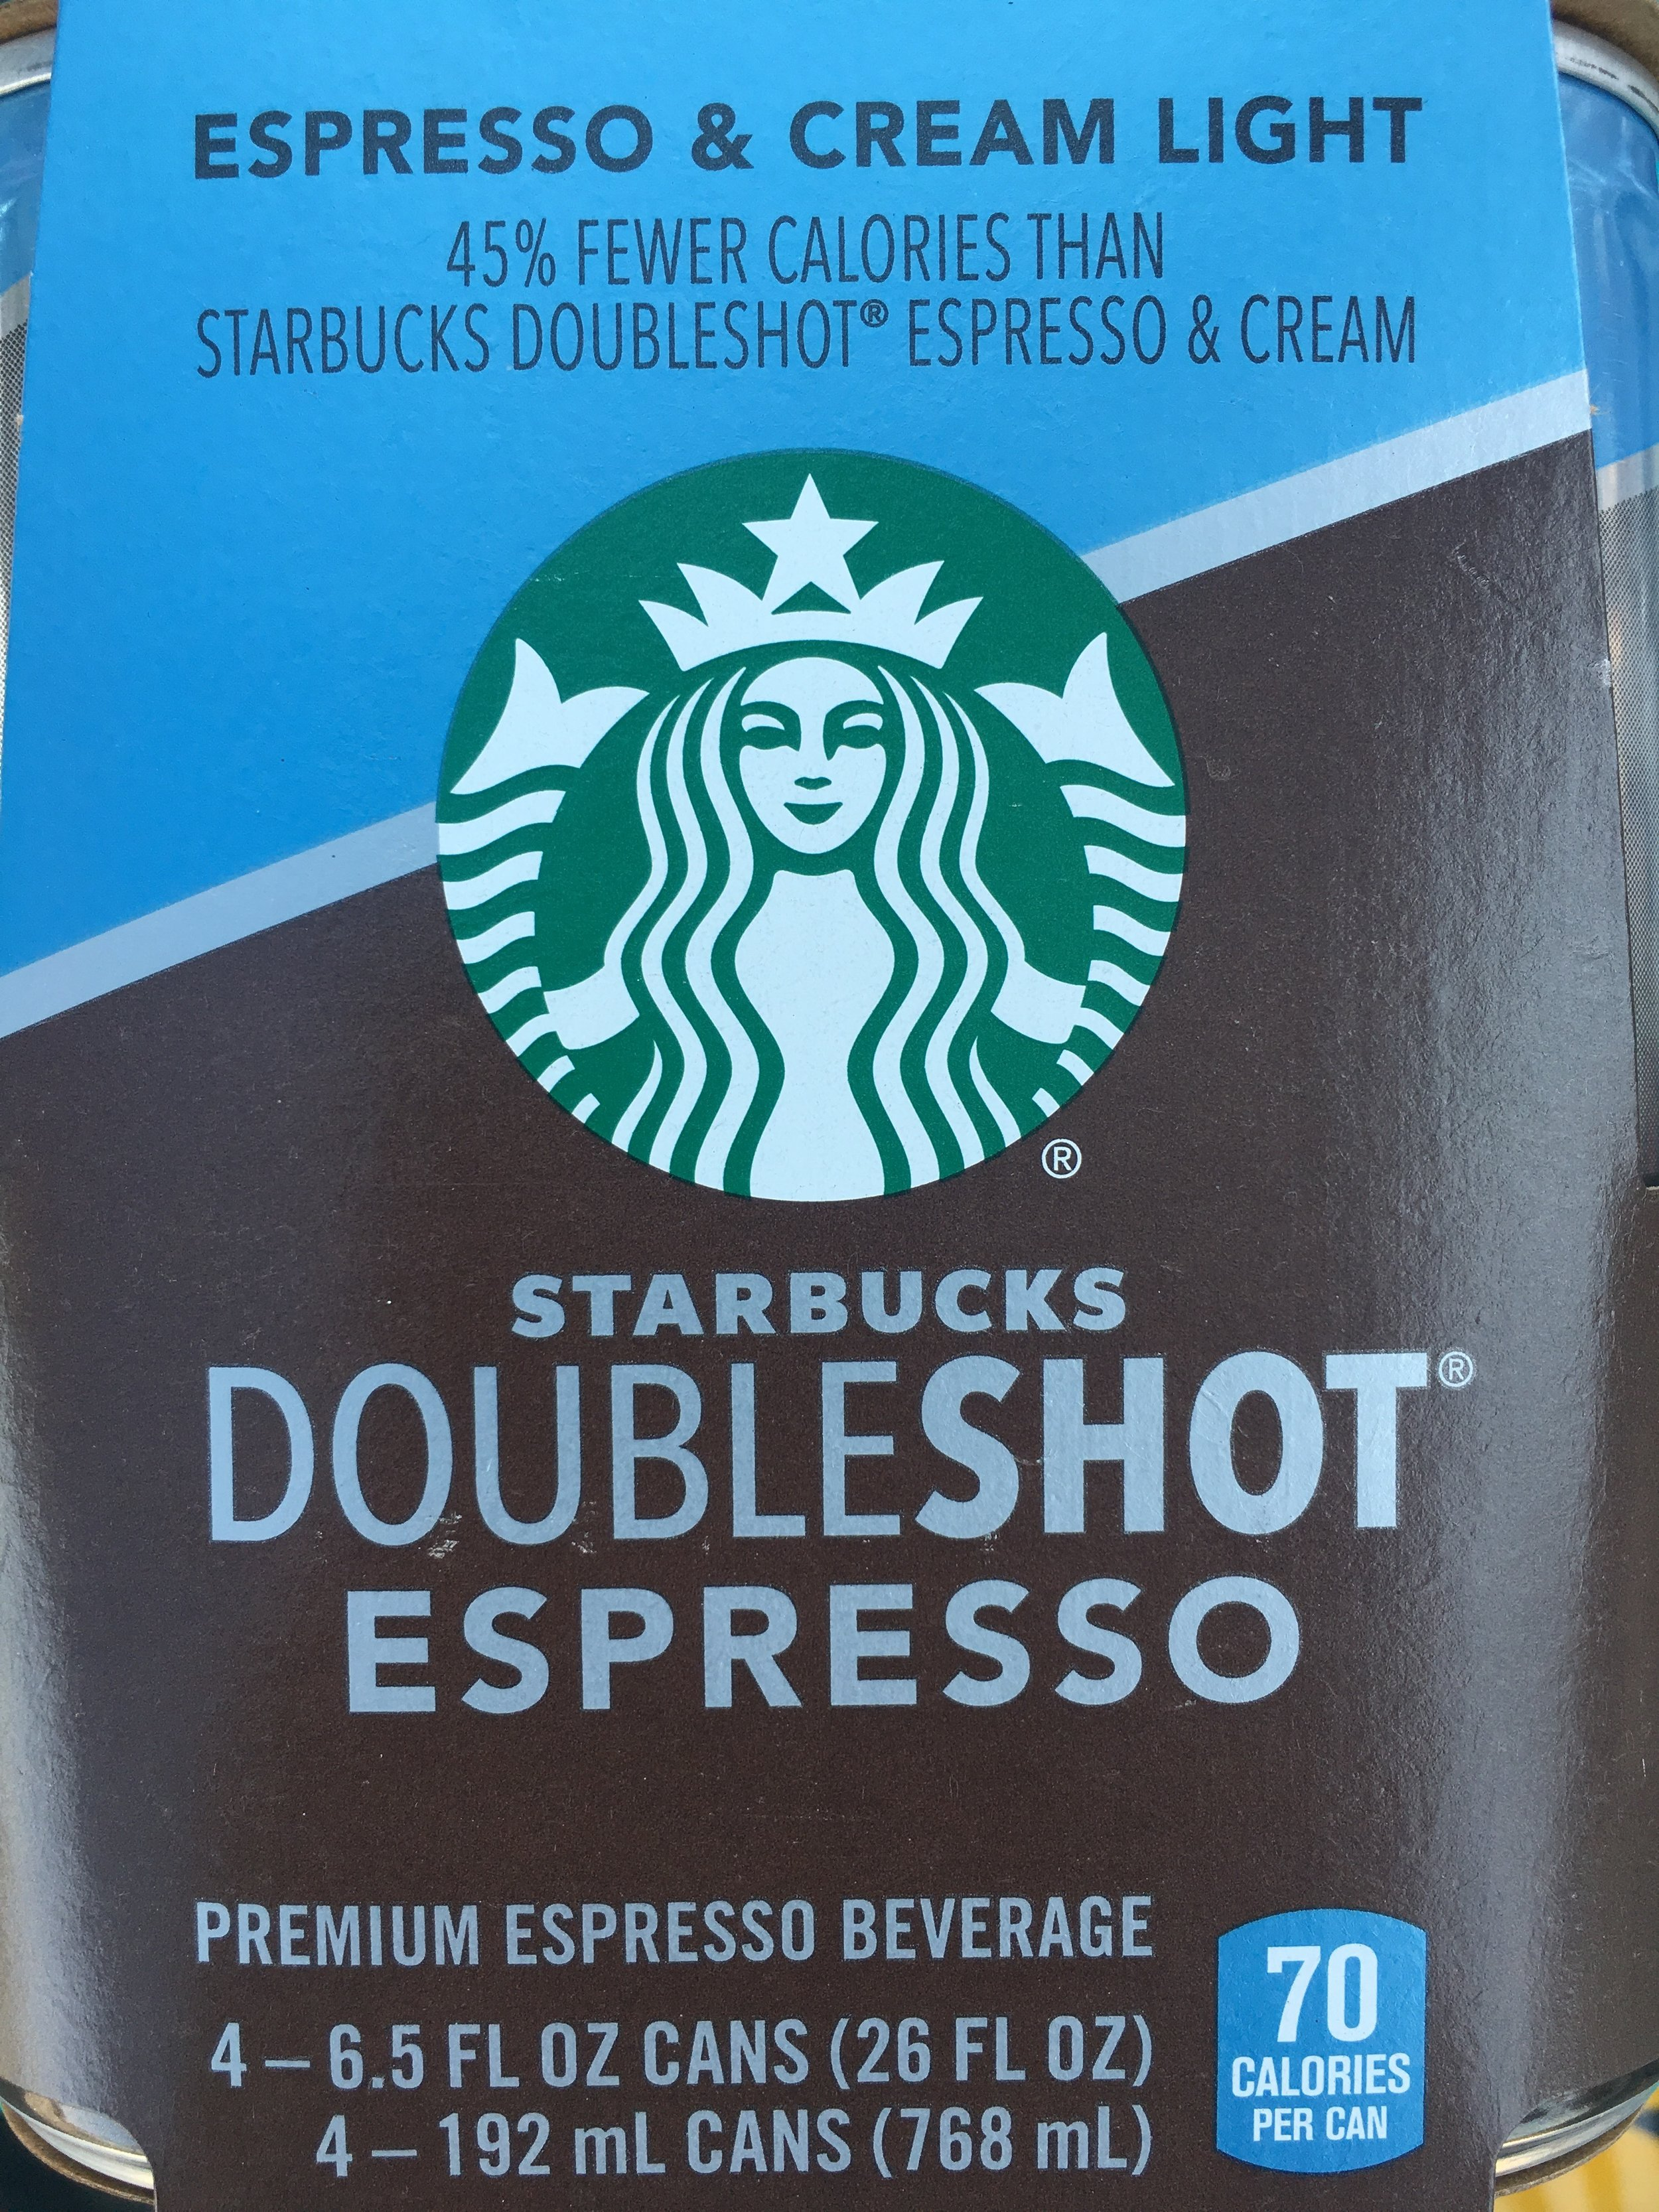 Starbucks - Doubleshot (Espresso & Cream Light)